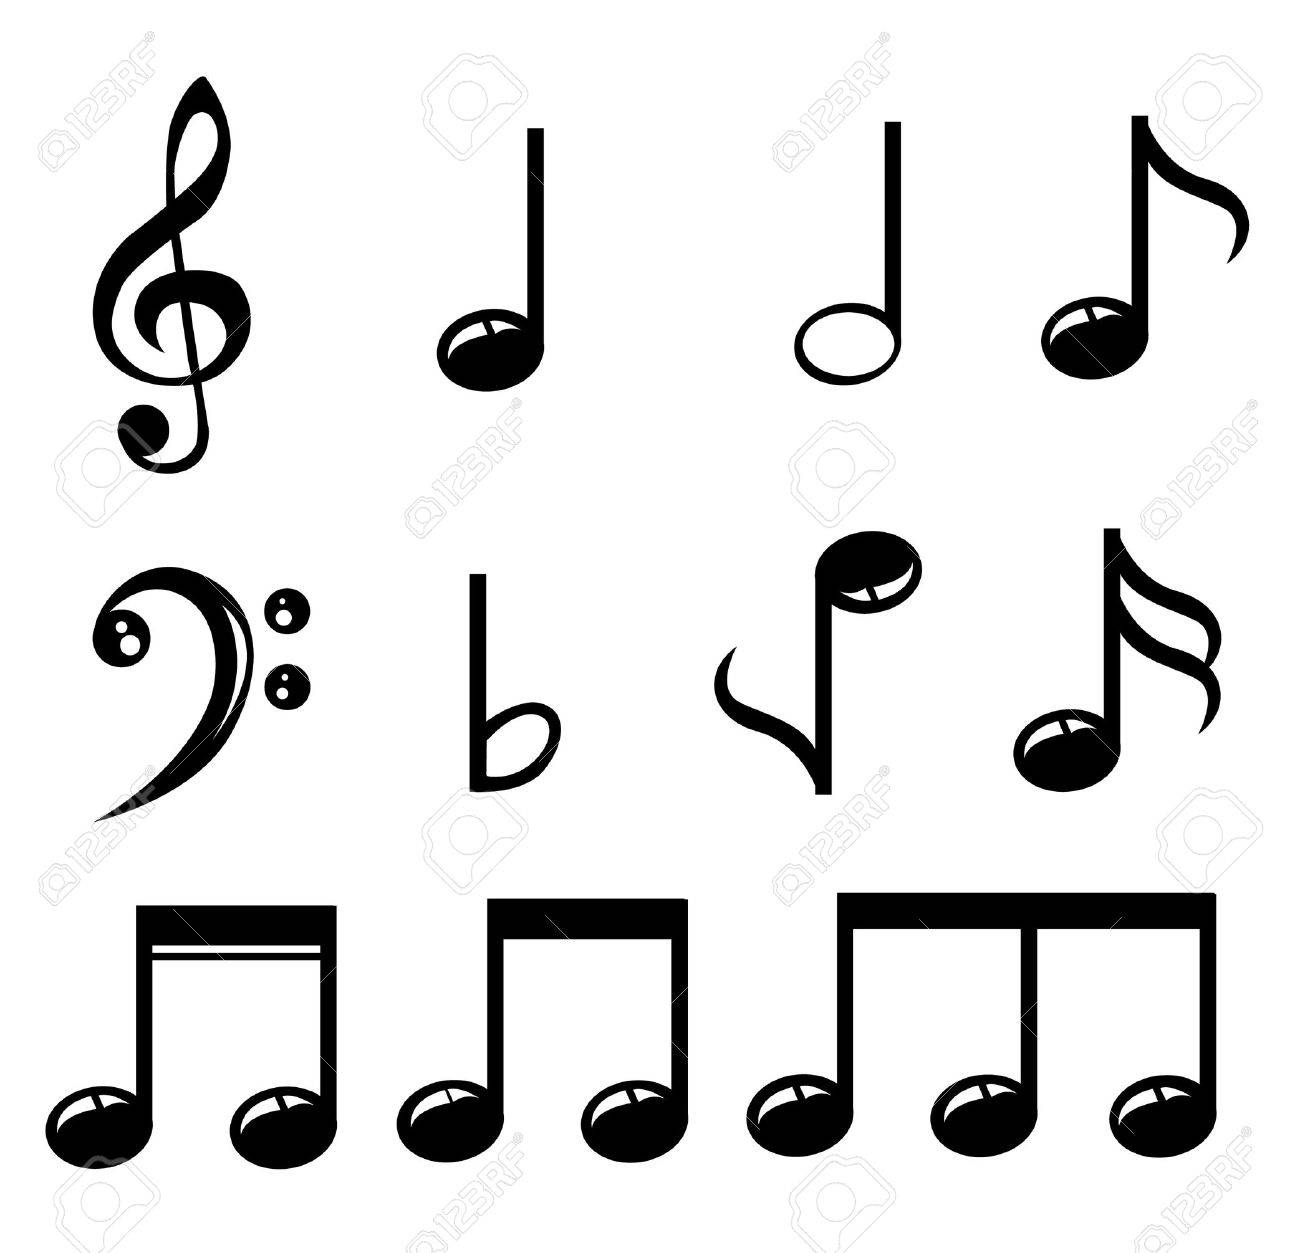 set of music notes vector royalty free cliparts vectors and stock rh 123rf com music note vectors free music note vectors free